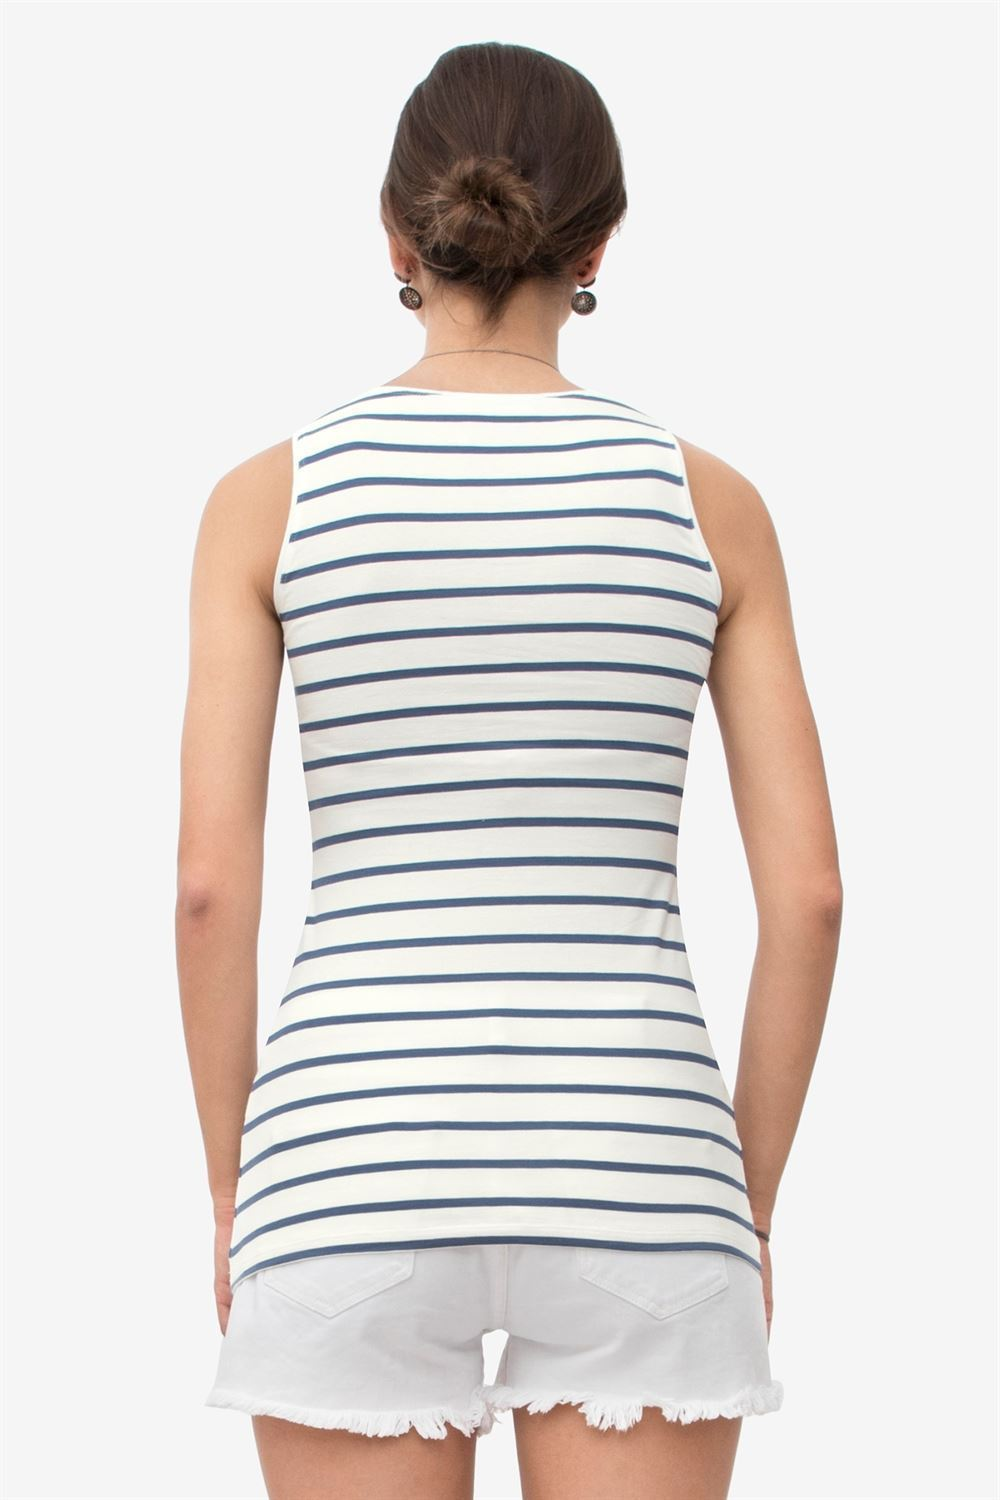 White nursing top with dark blue stripe in soft organic cotton - Seen from behind